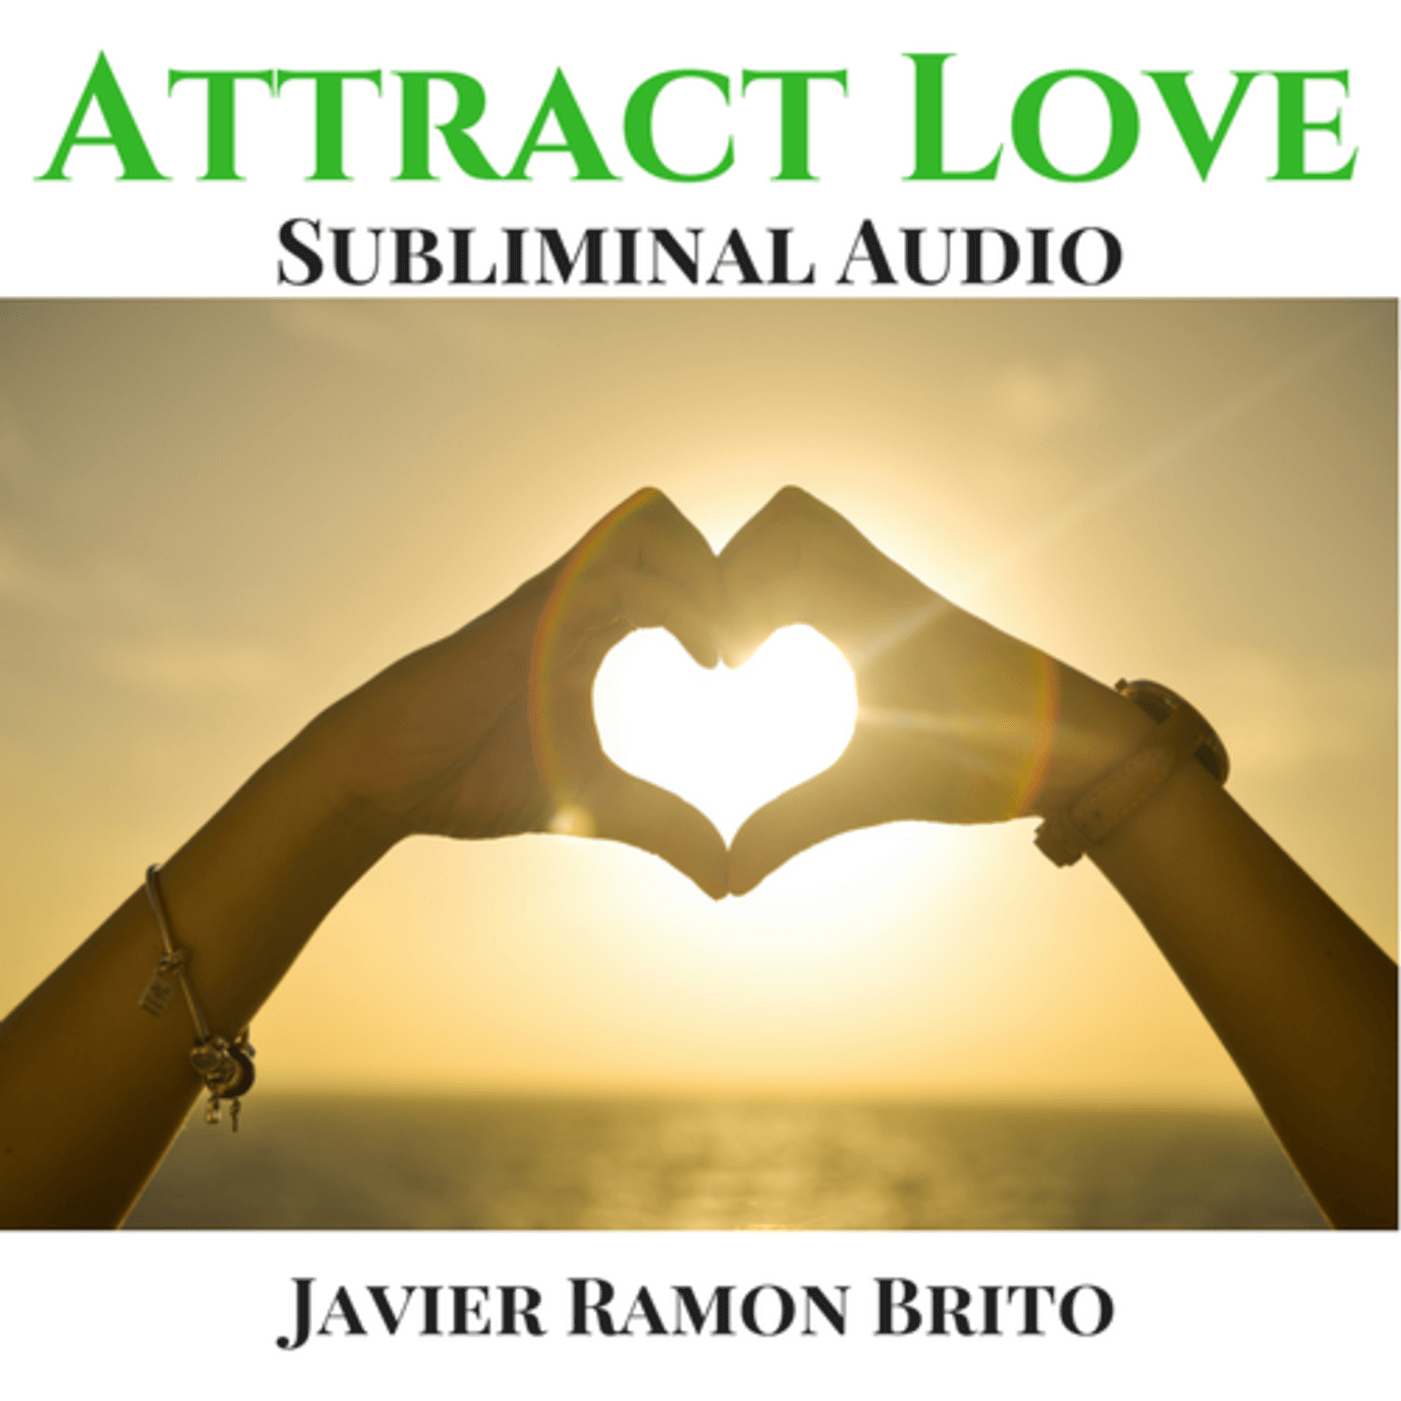 self love, love, audio program, mp3, positive affirmations, subliminal, audio, recording, meditation music